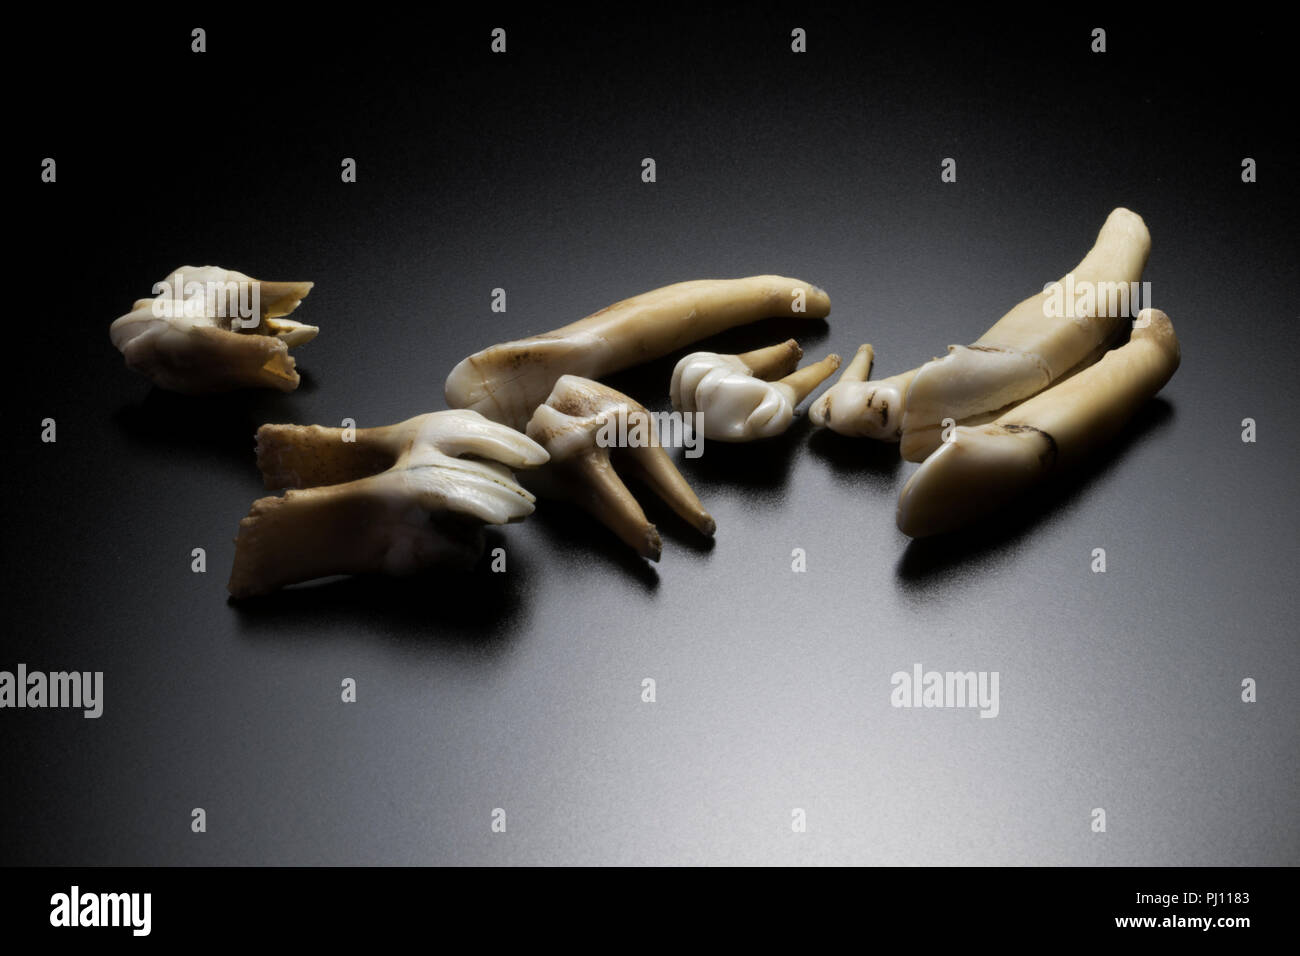 Group of teeth of various sizes. Pulled teeth on black background. Extracted teeth. Stock Photo